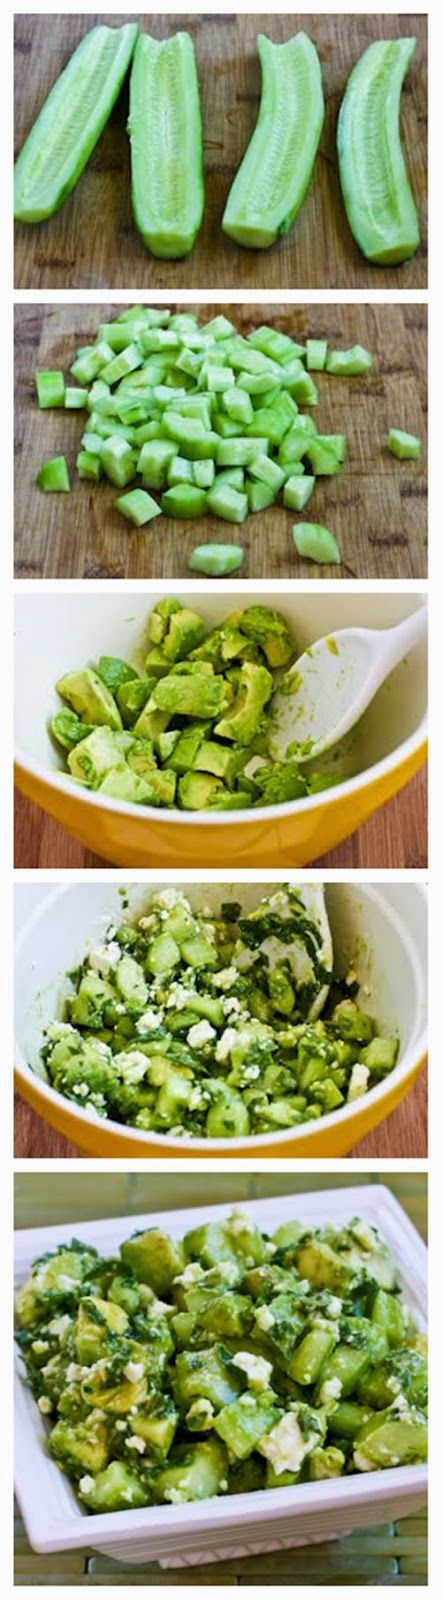 Cucumber and Avocado Salad with Lime, Mint, and Feta - RedStarRecipe